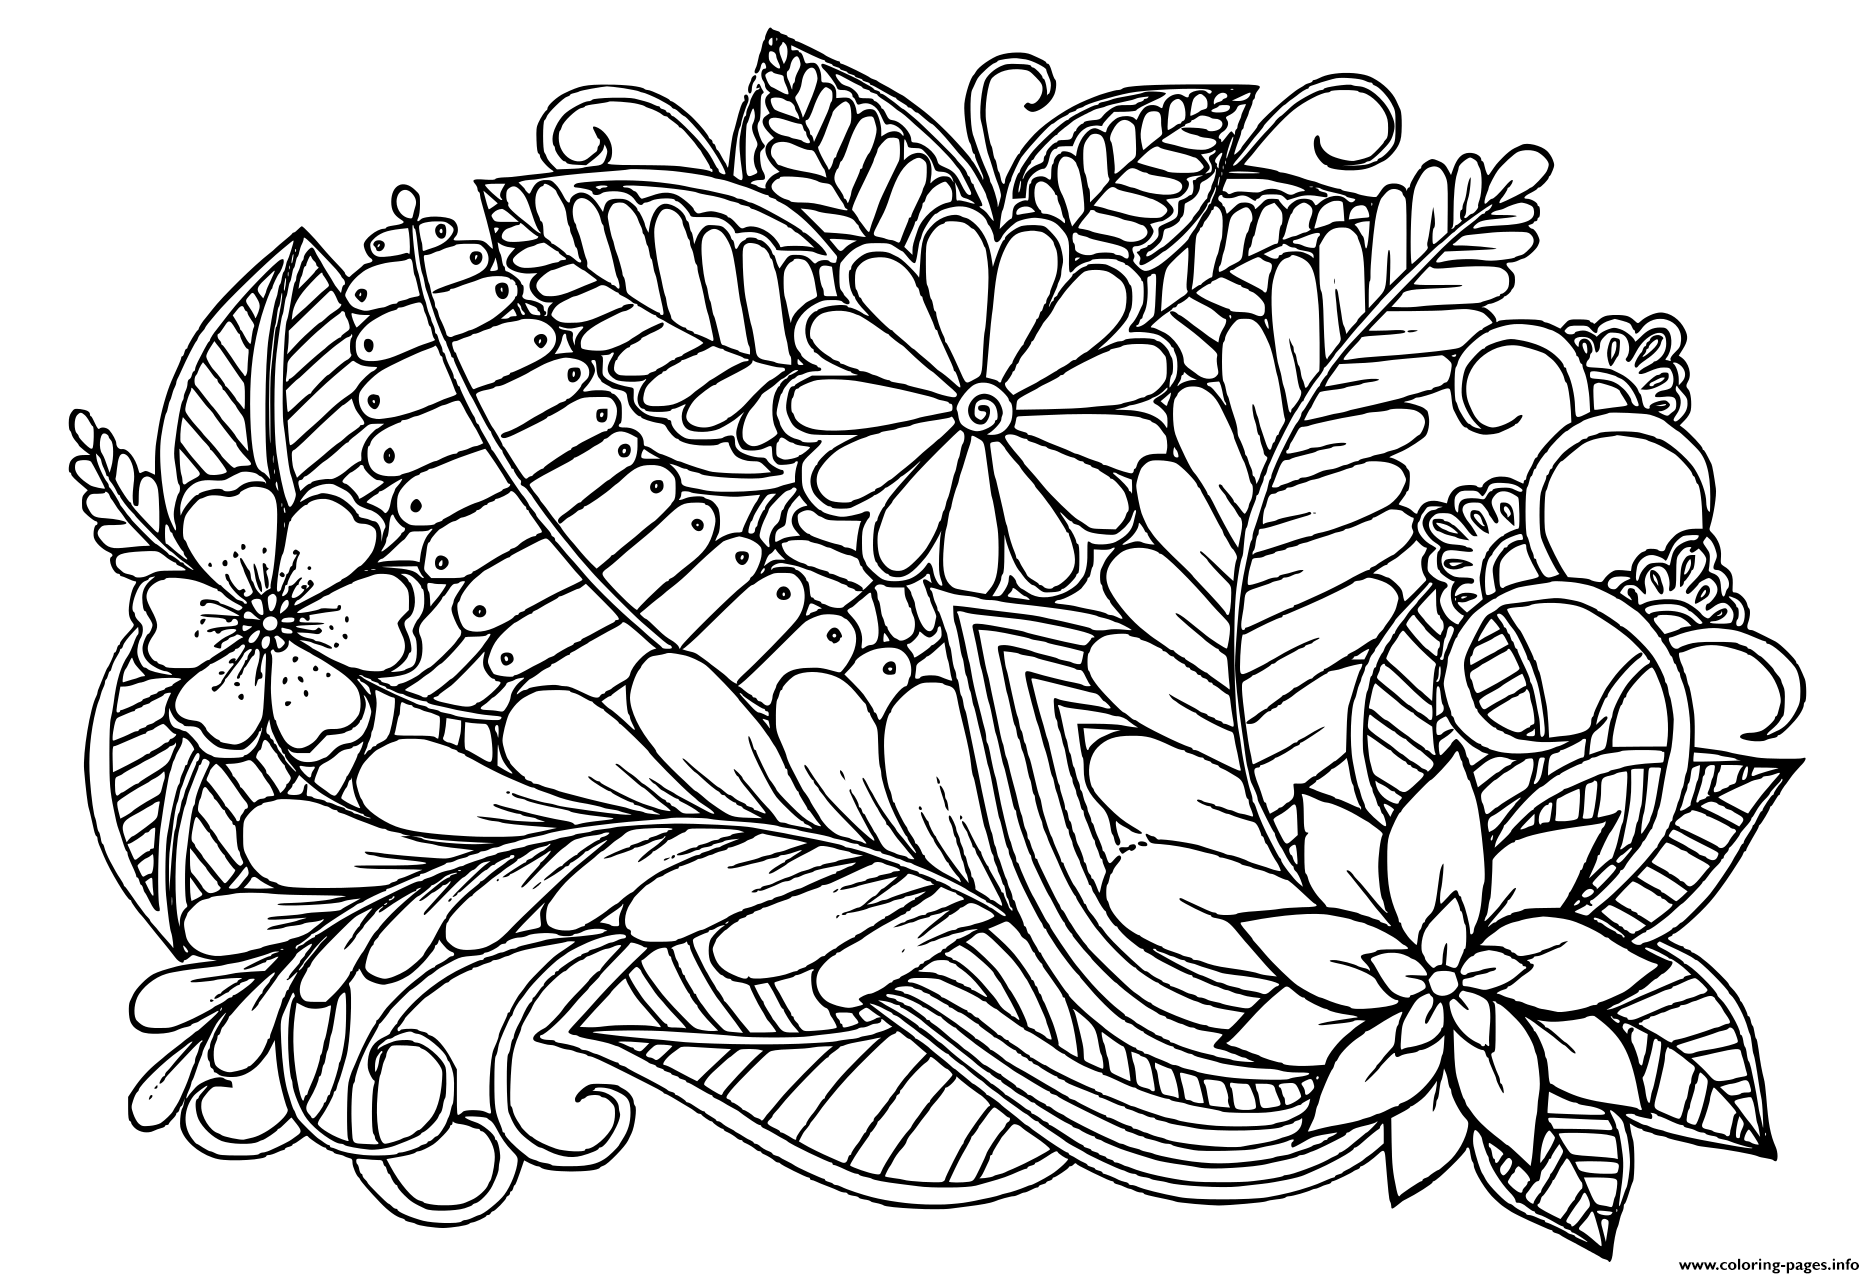 - Doodle Floral Pattern In Black And White Adult Coloring Pages